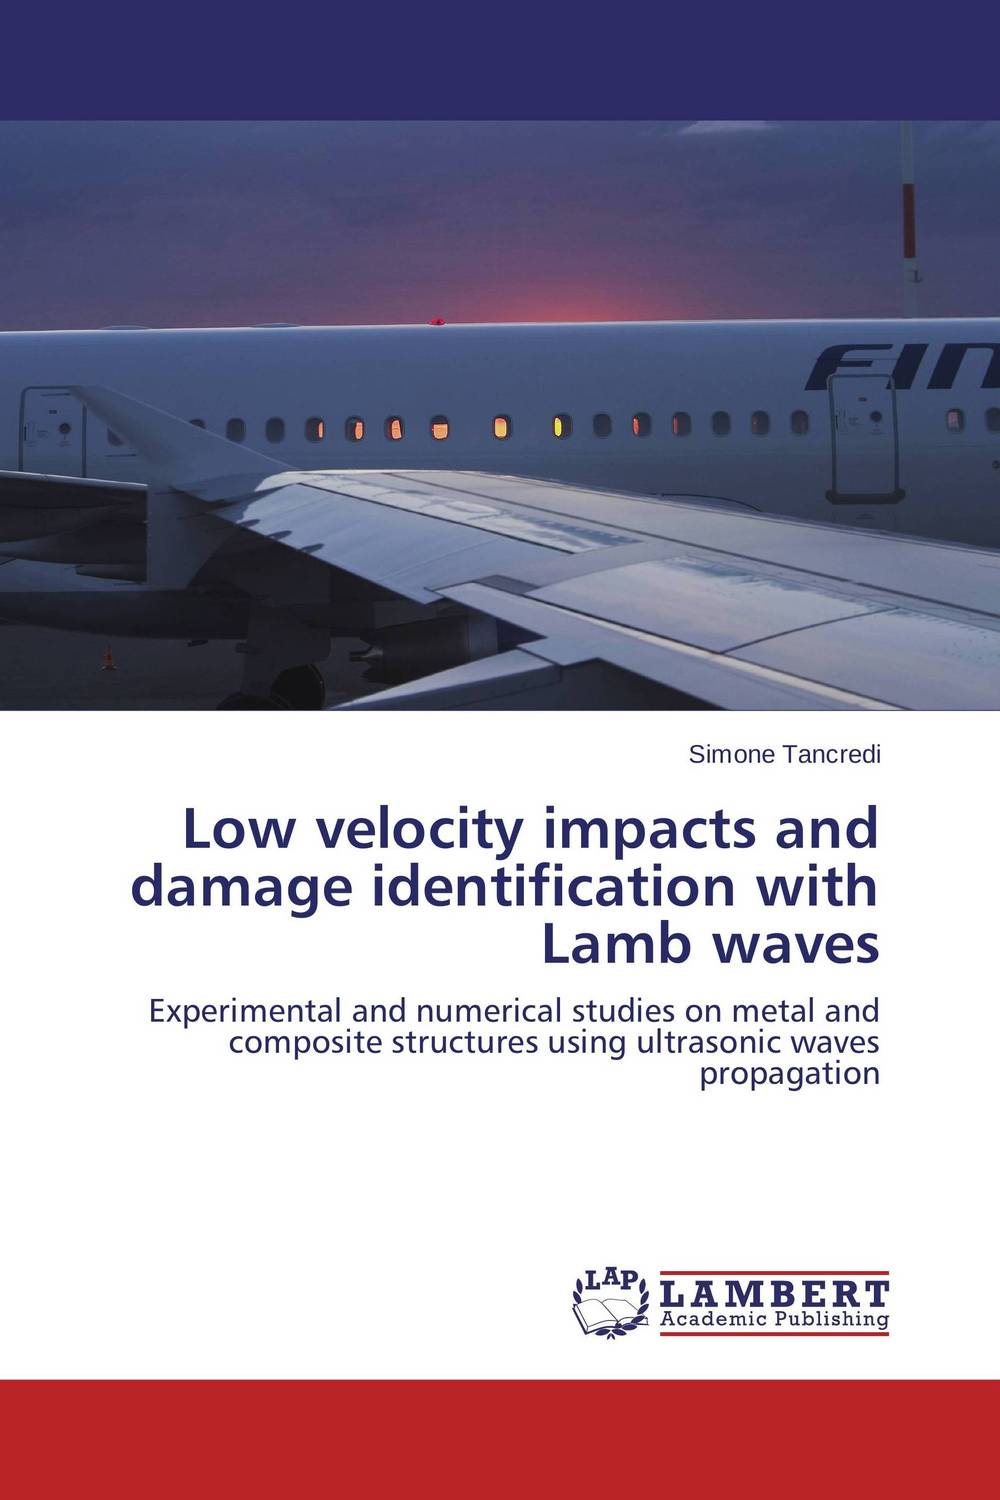 Low velocity impacts and damage identification with Lamb waves computational modeling of damage and fracture in composite materials